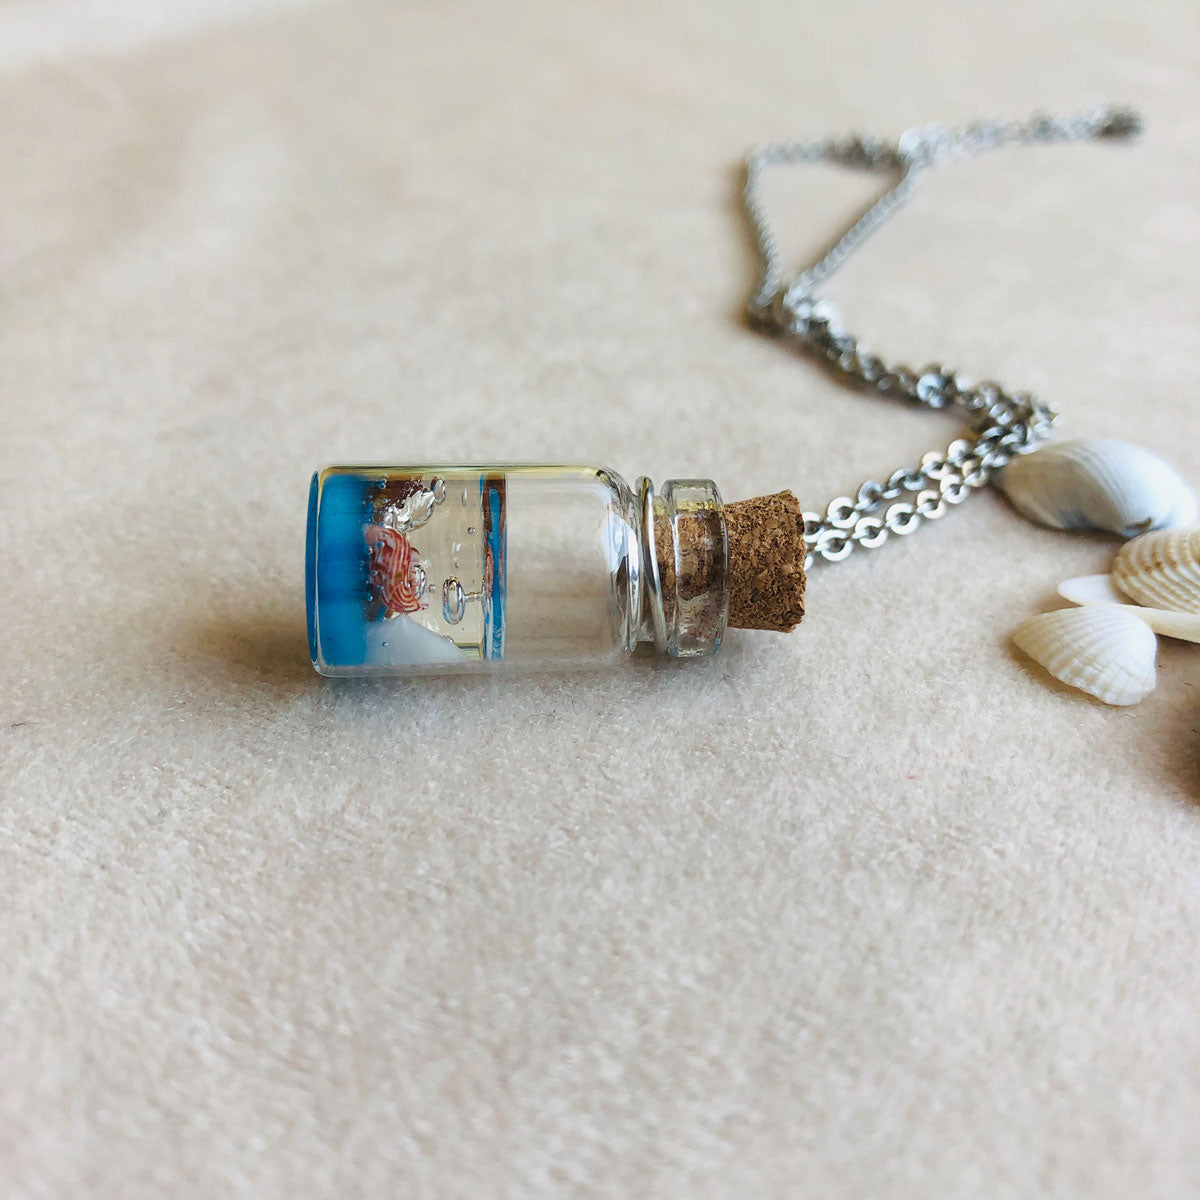 Summer | Glass bottle with sea shells